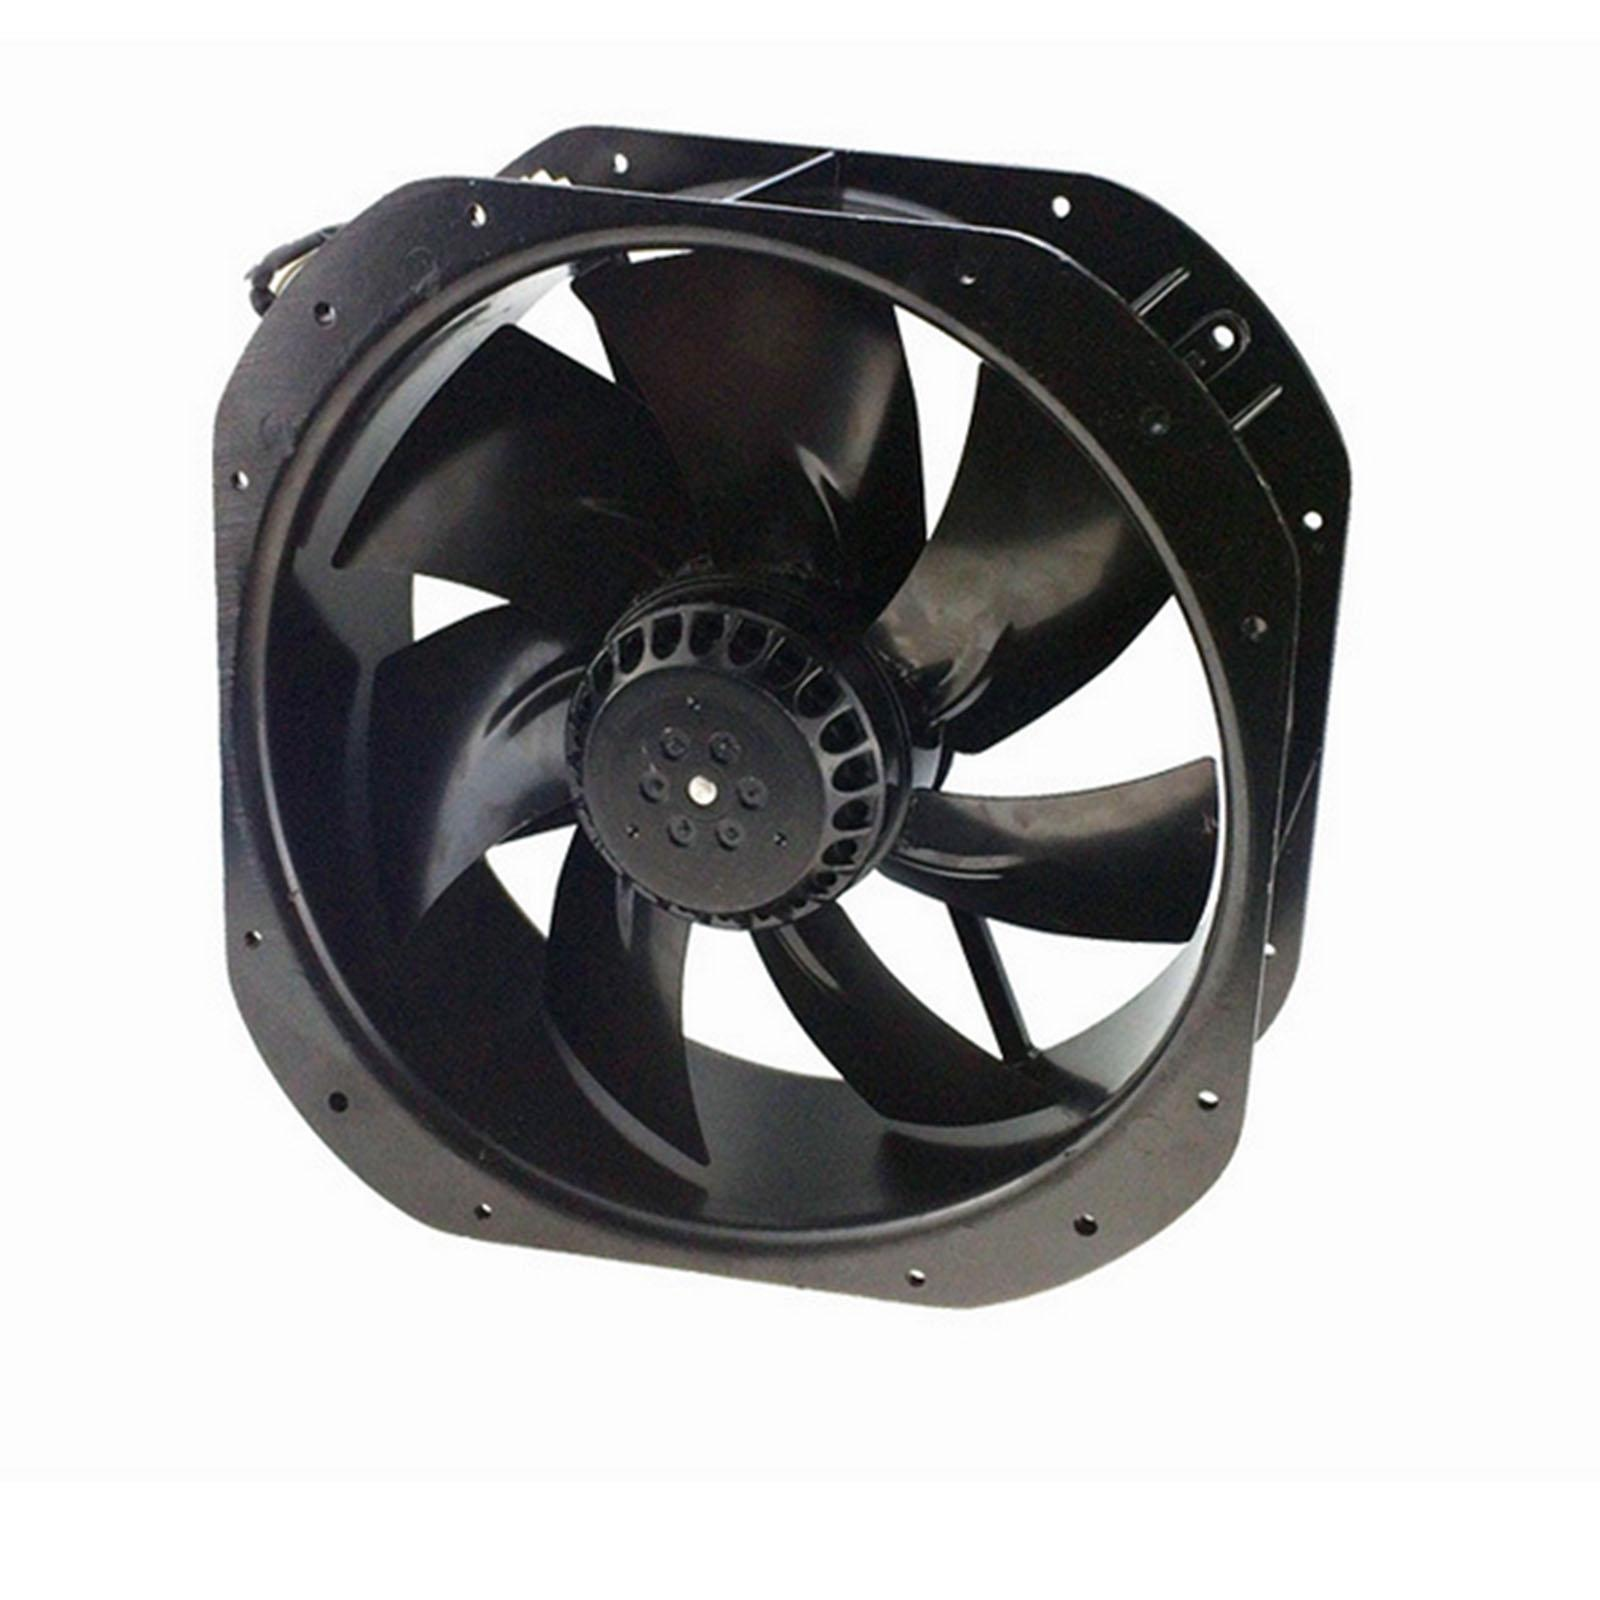 220V AC 280x280x80mm Axial Radiator Fan 1341CFM 2400RPM Ball Bearing High Speed цена 2017